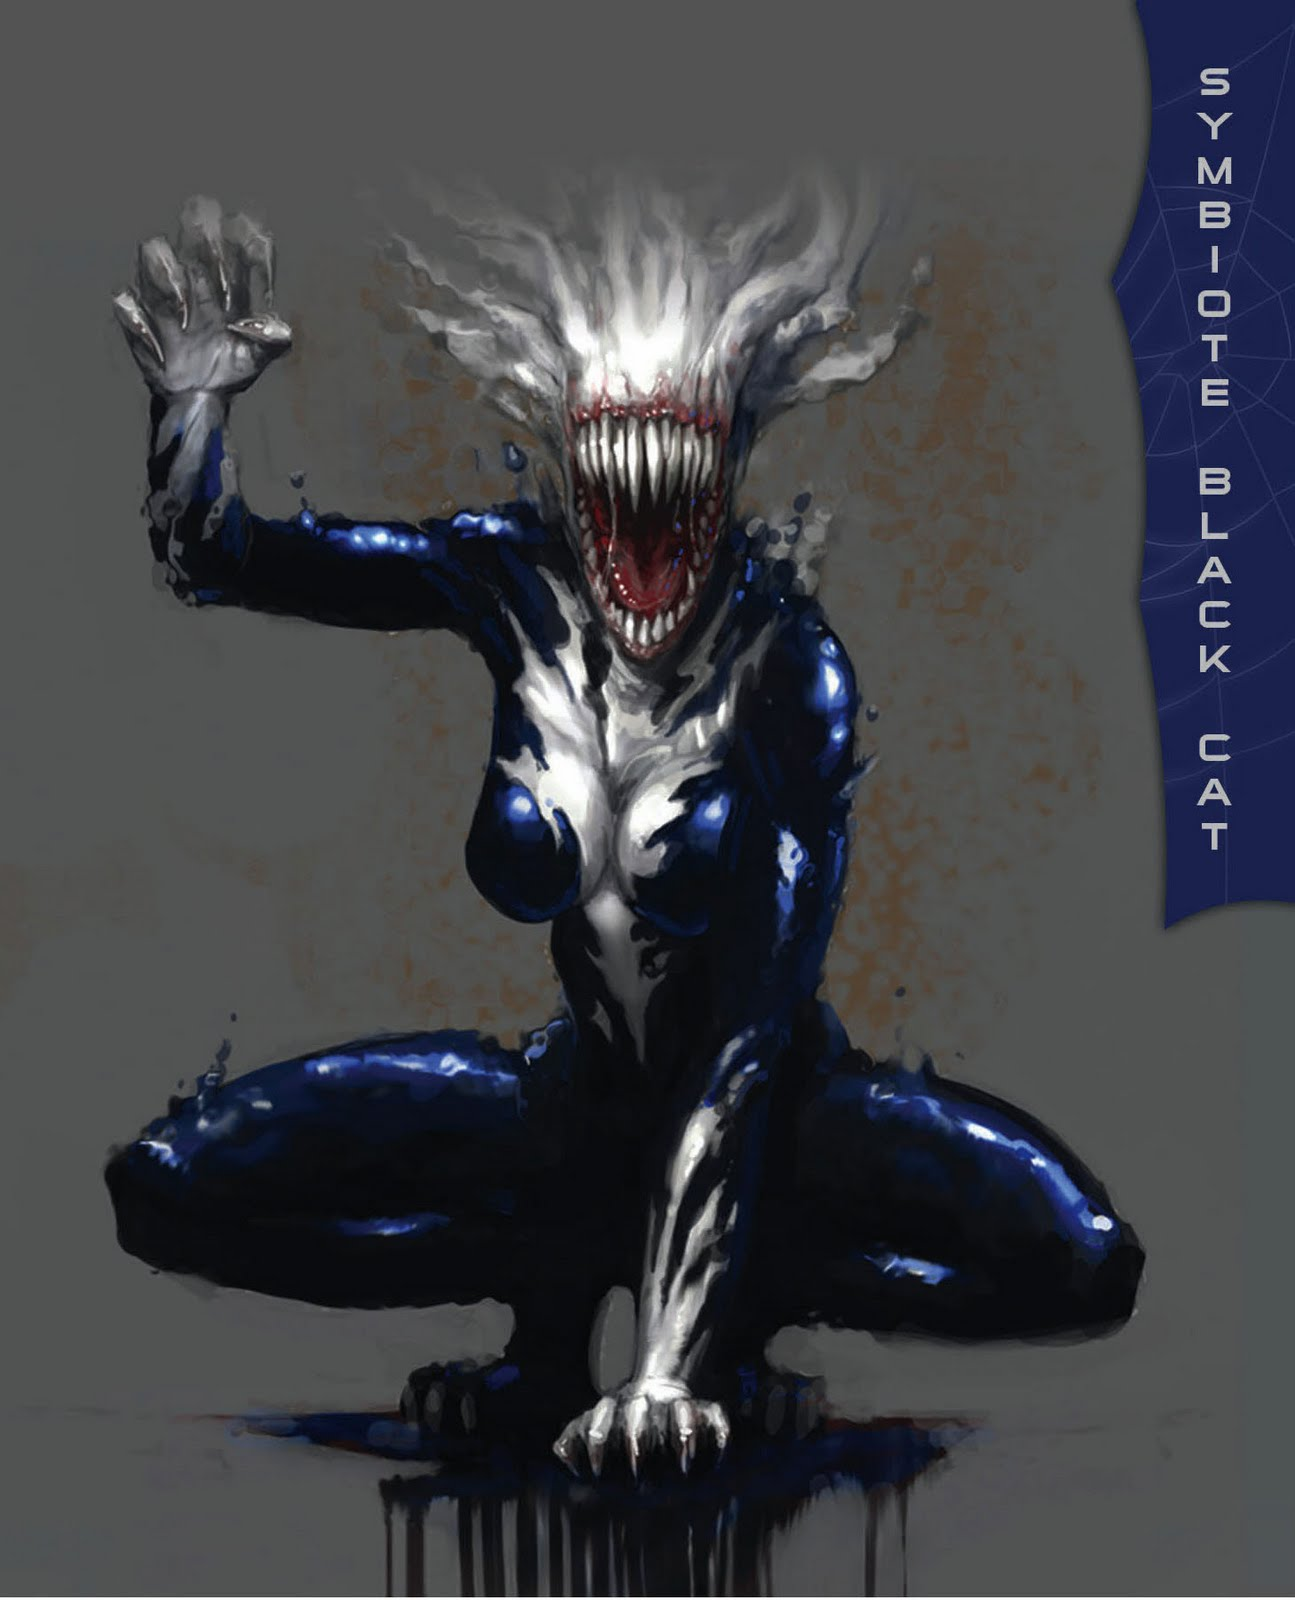 Spider man web of shadows symbiote electro - photo#13